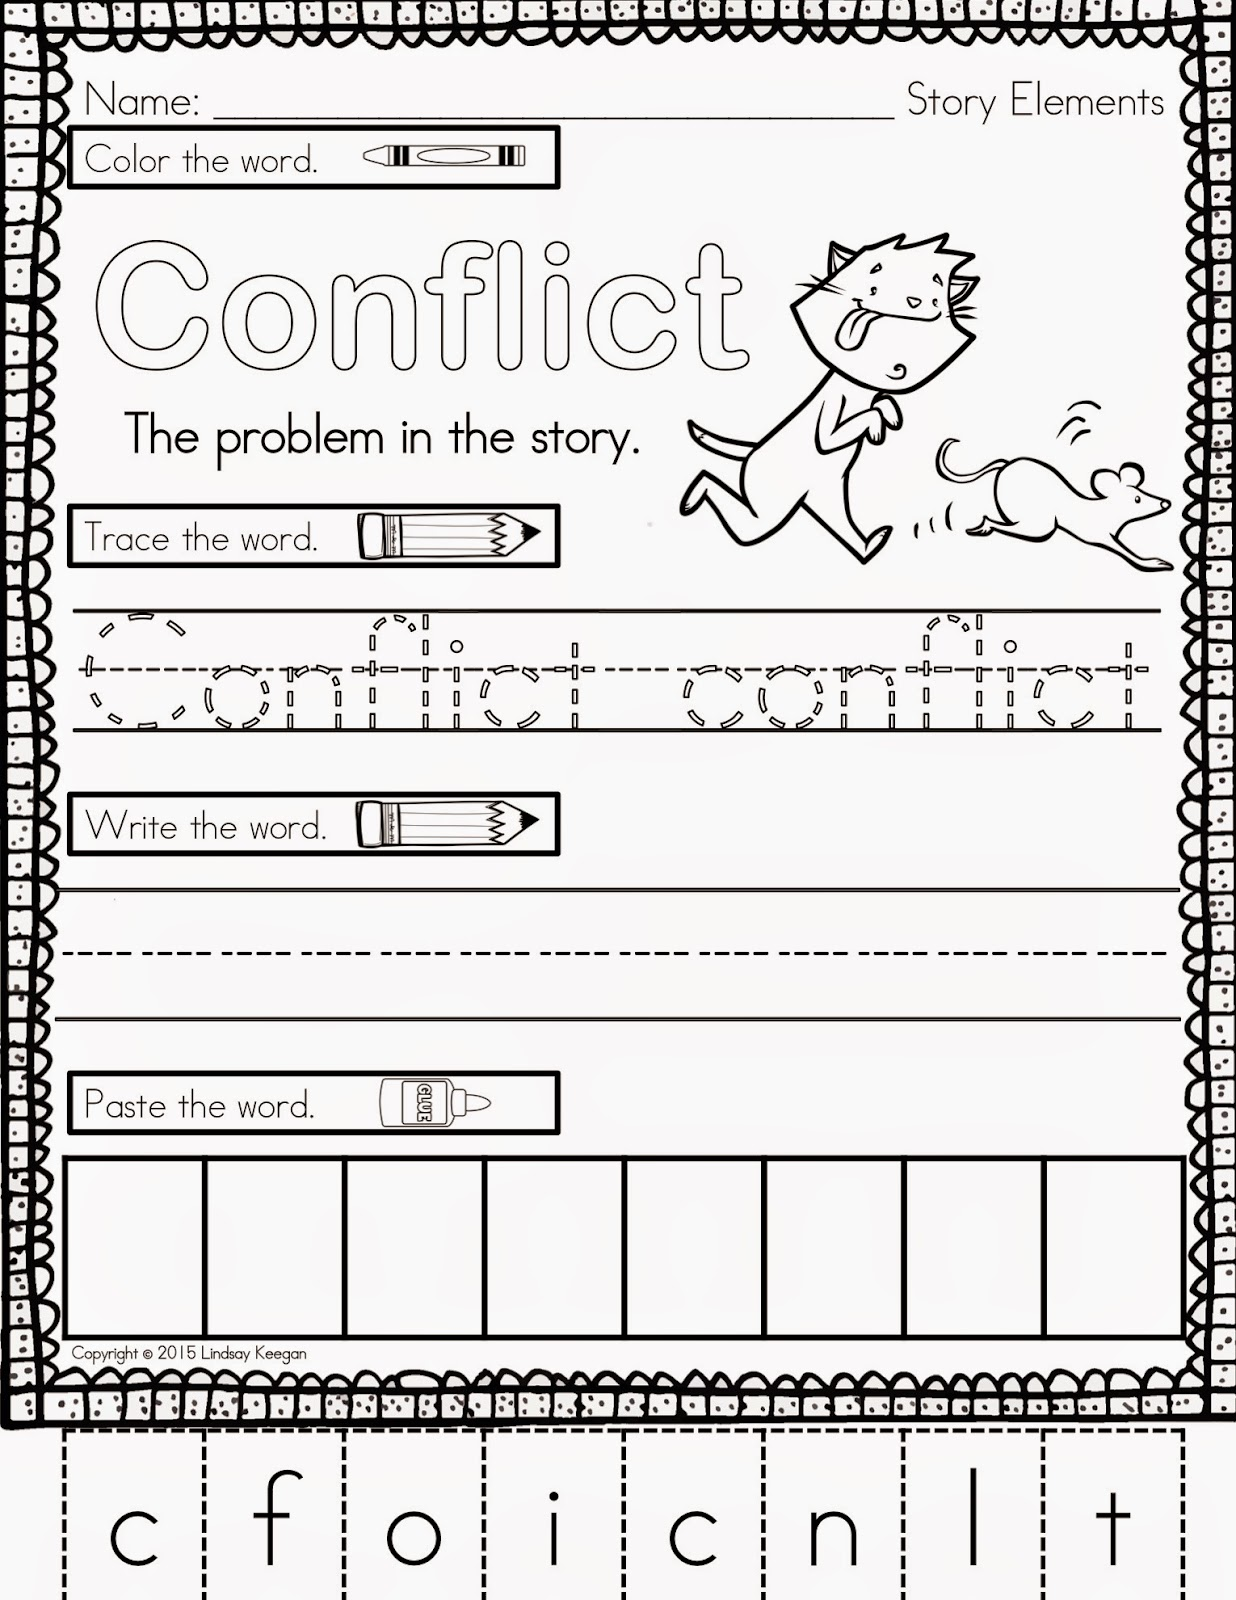 Keeping It Cool At School Teaching Story Elements And A